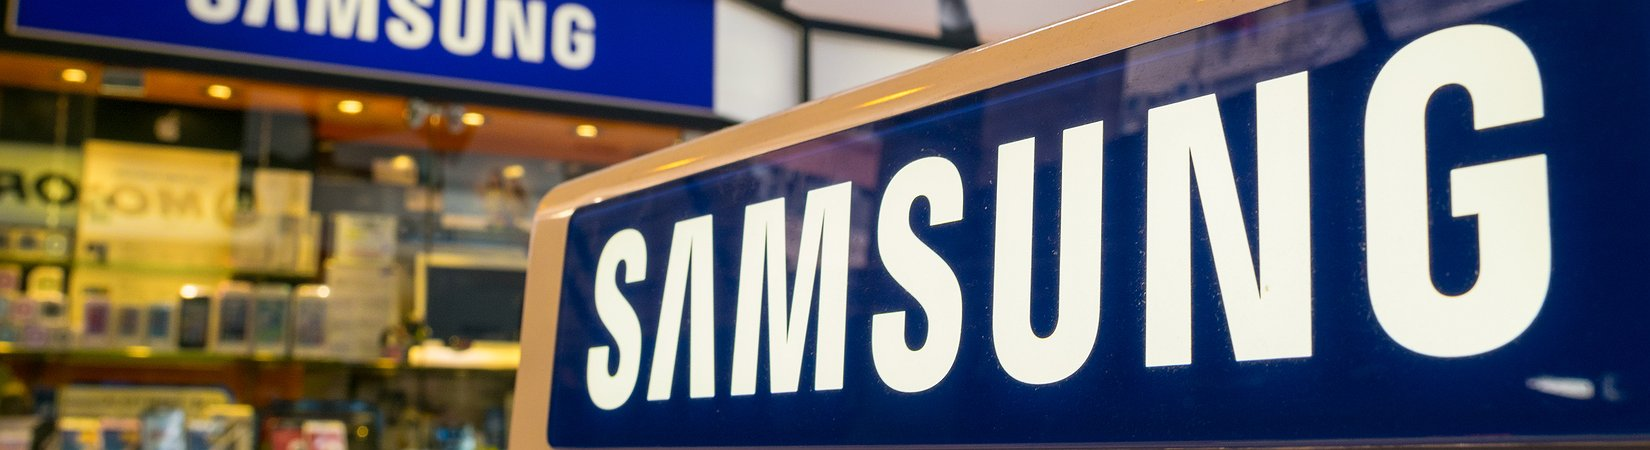 Samsung to offer smartphones at half price (by selling them again)